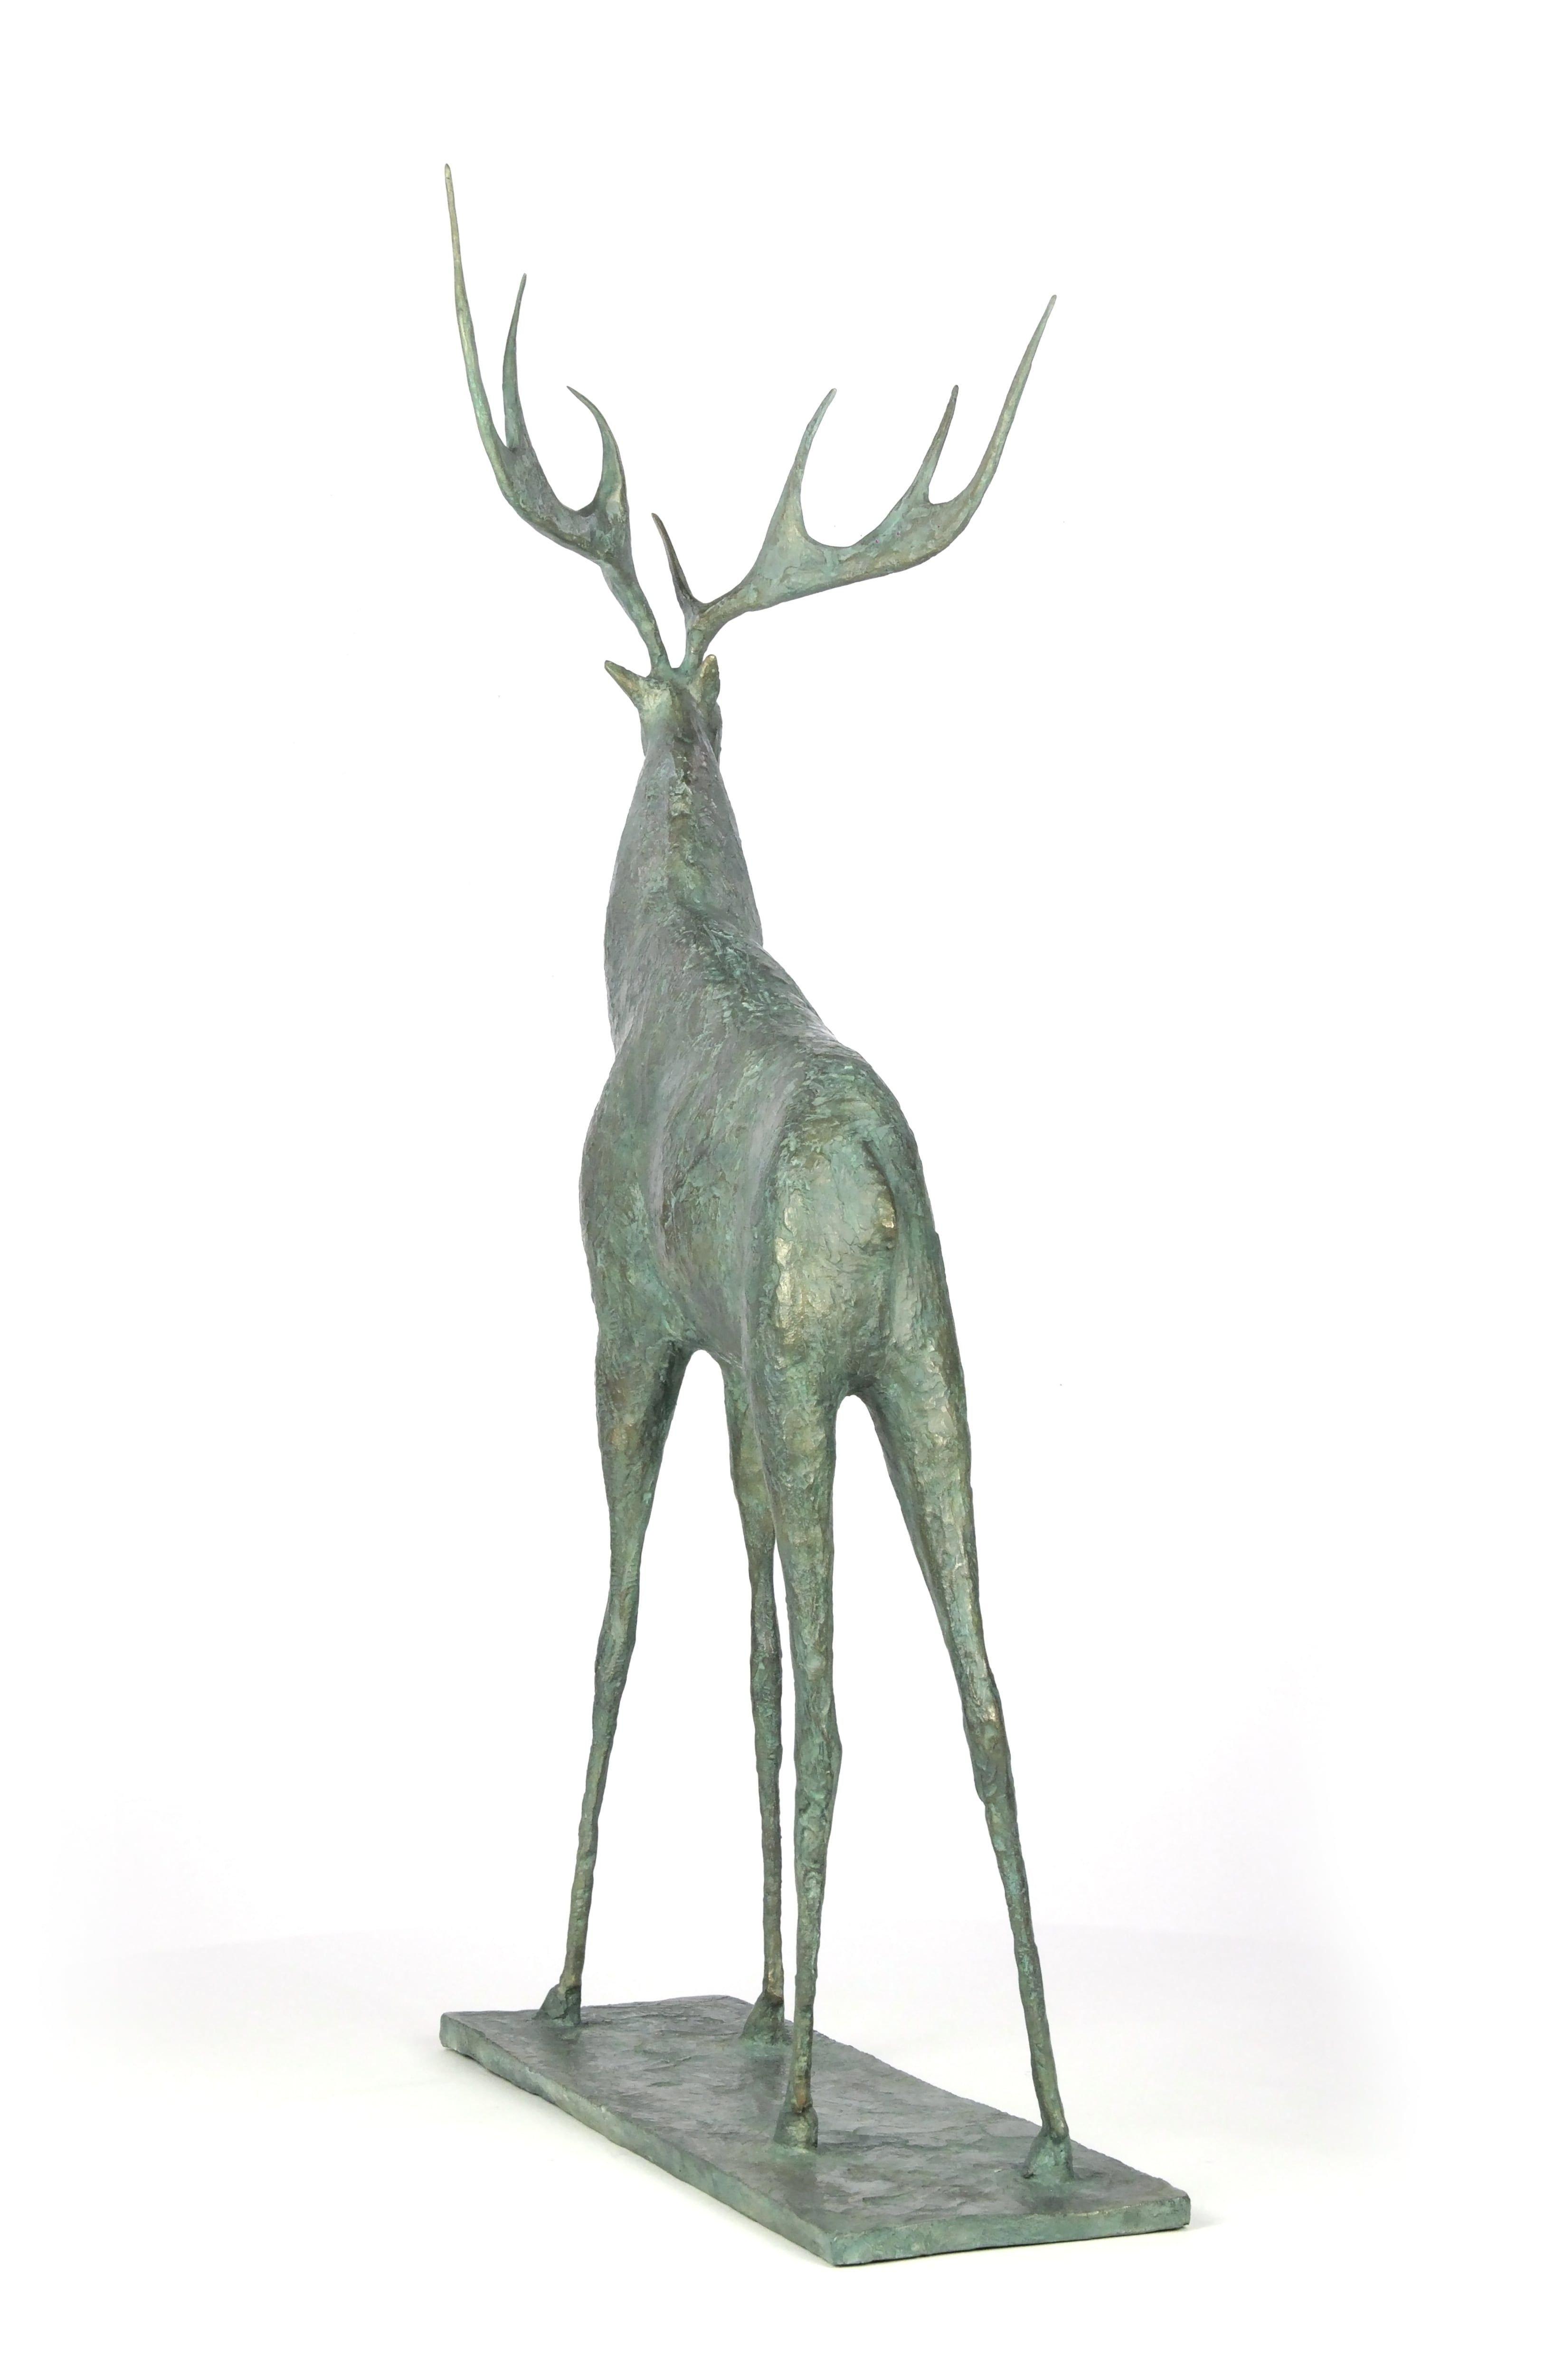 Cerf I,Pierre Yermia,Sculpture, detail 3